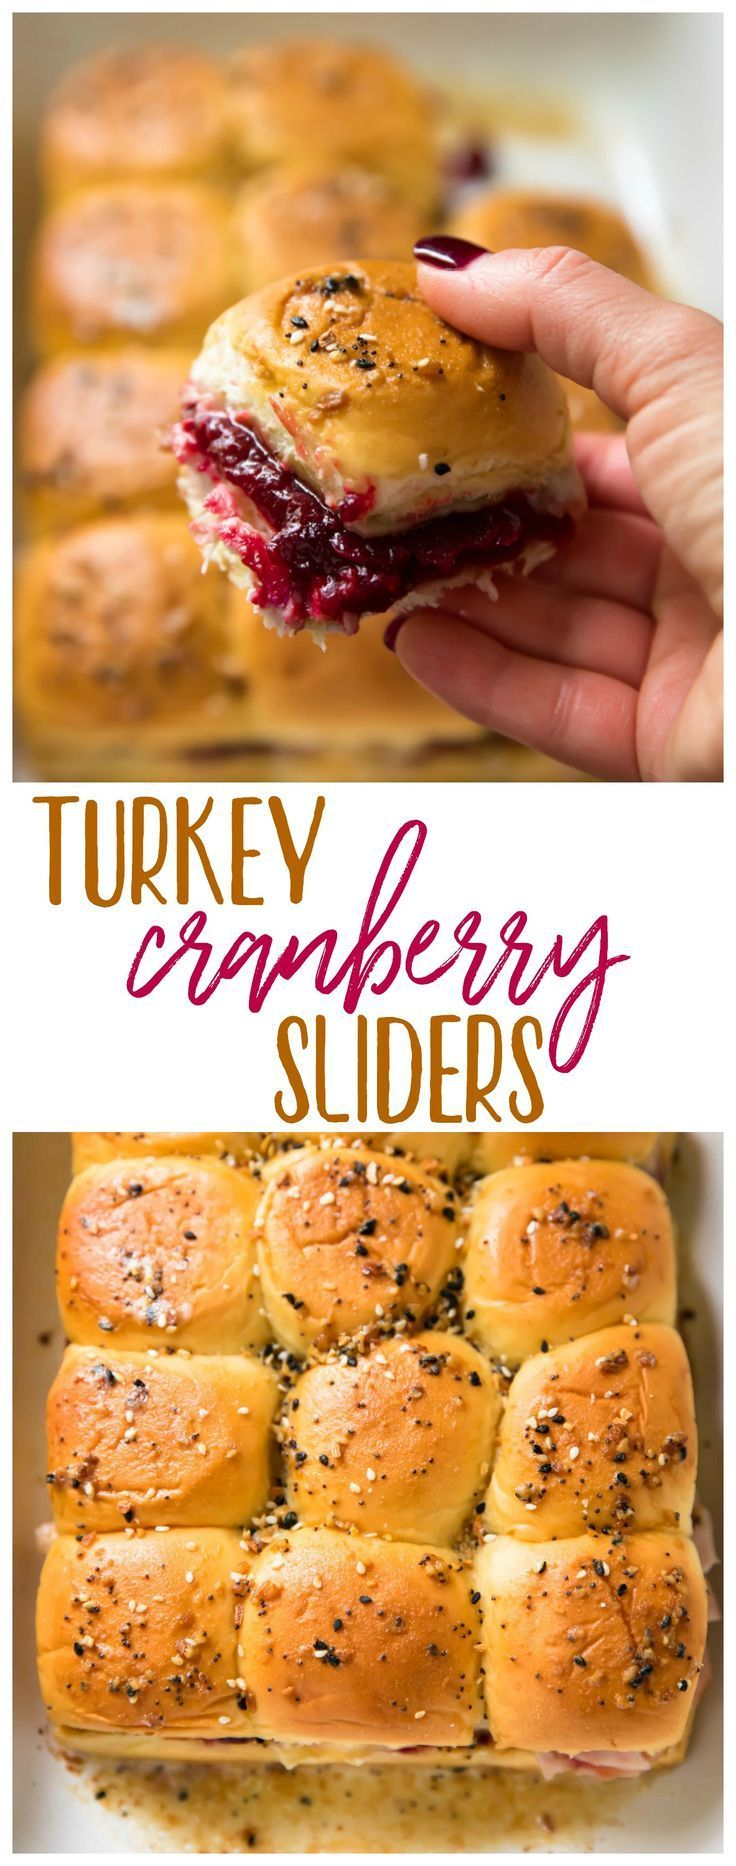 Turkey Cranberry Sliders are a quick and easy recipe to use up that leftover turkey and cranberry sauce from the holidays! Hawaiian rolls are loaded with turkey, cranberry sauce and your favorite cheese for a tasty lunch or dinner after the big meal. #ad #FallForFresh